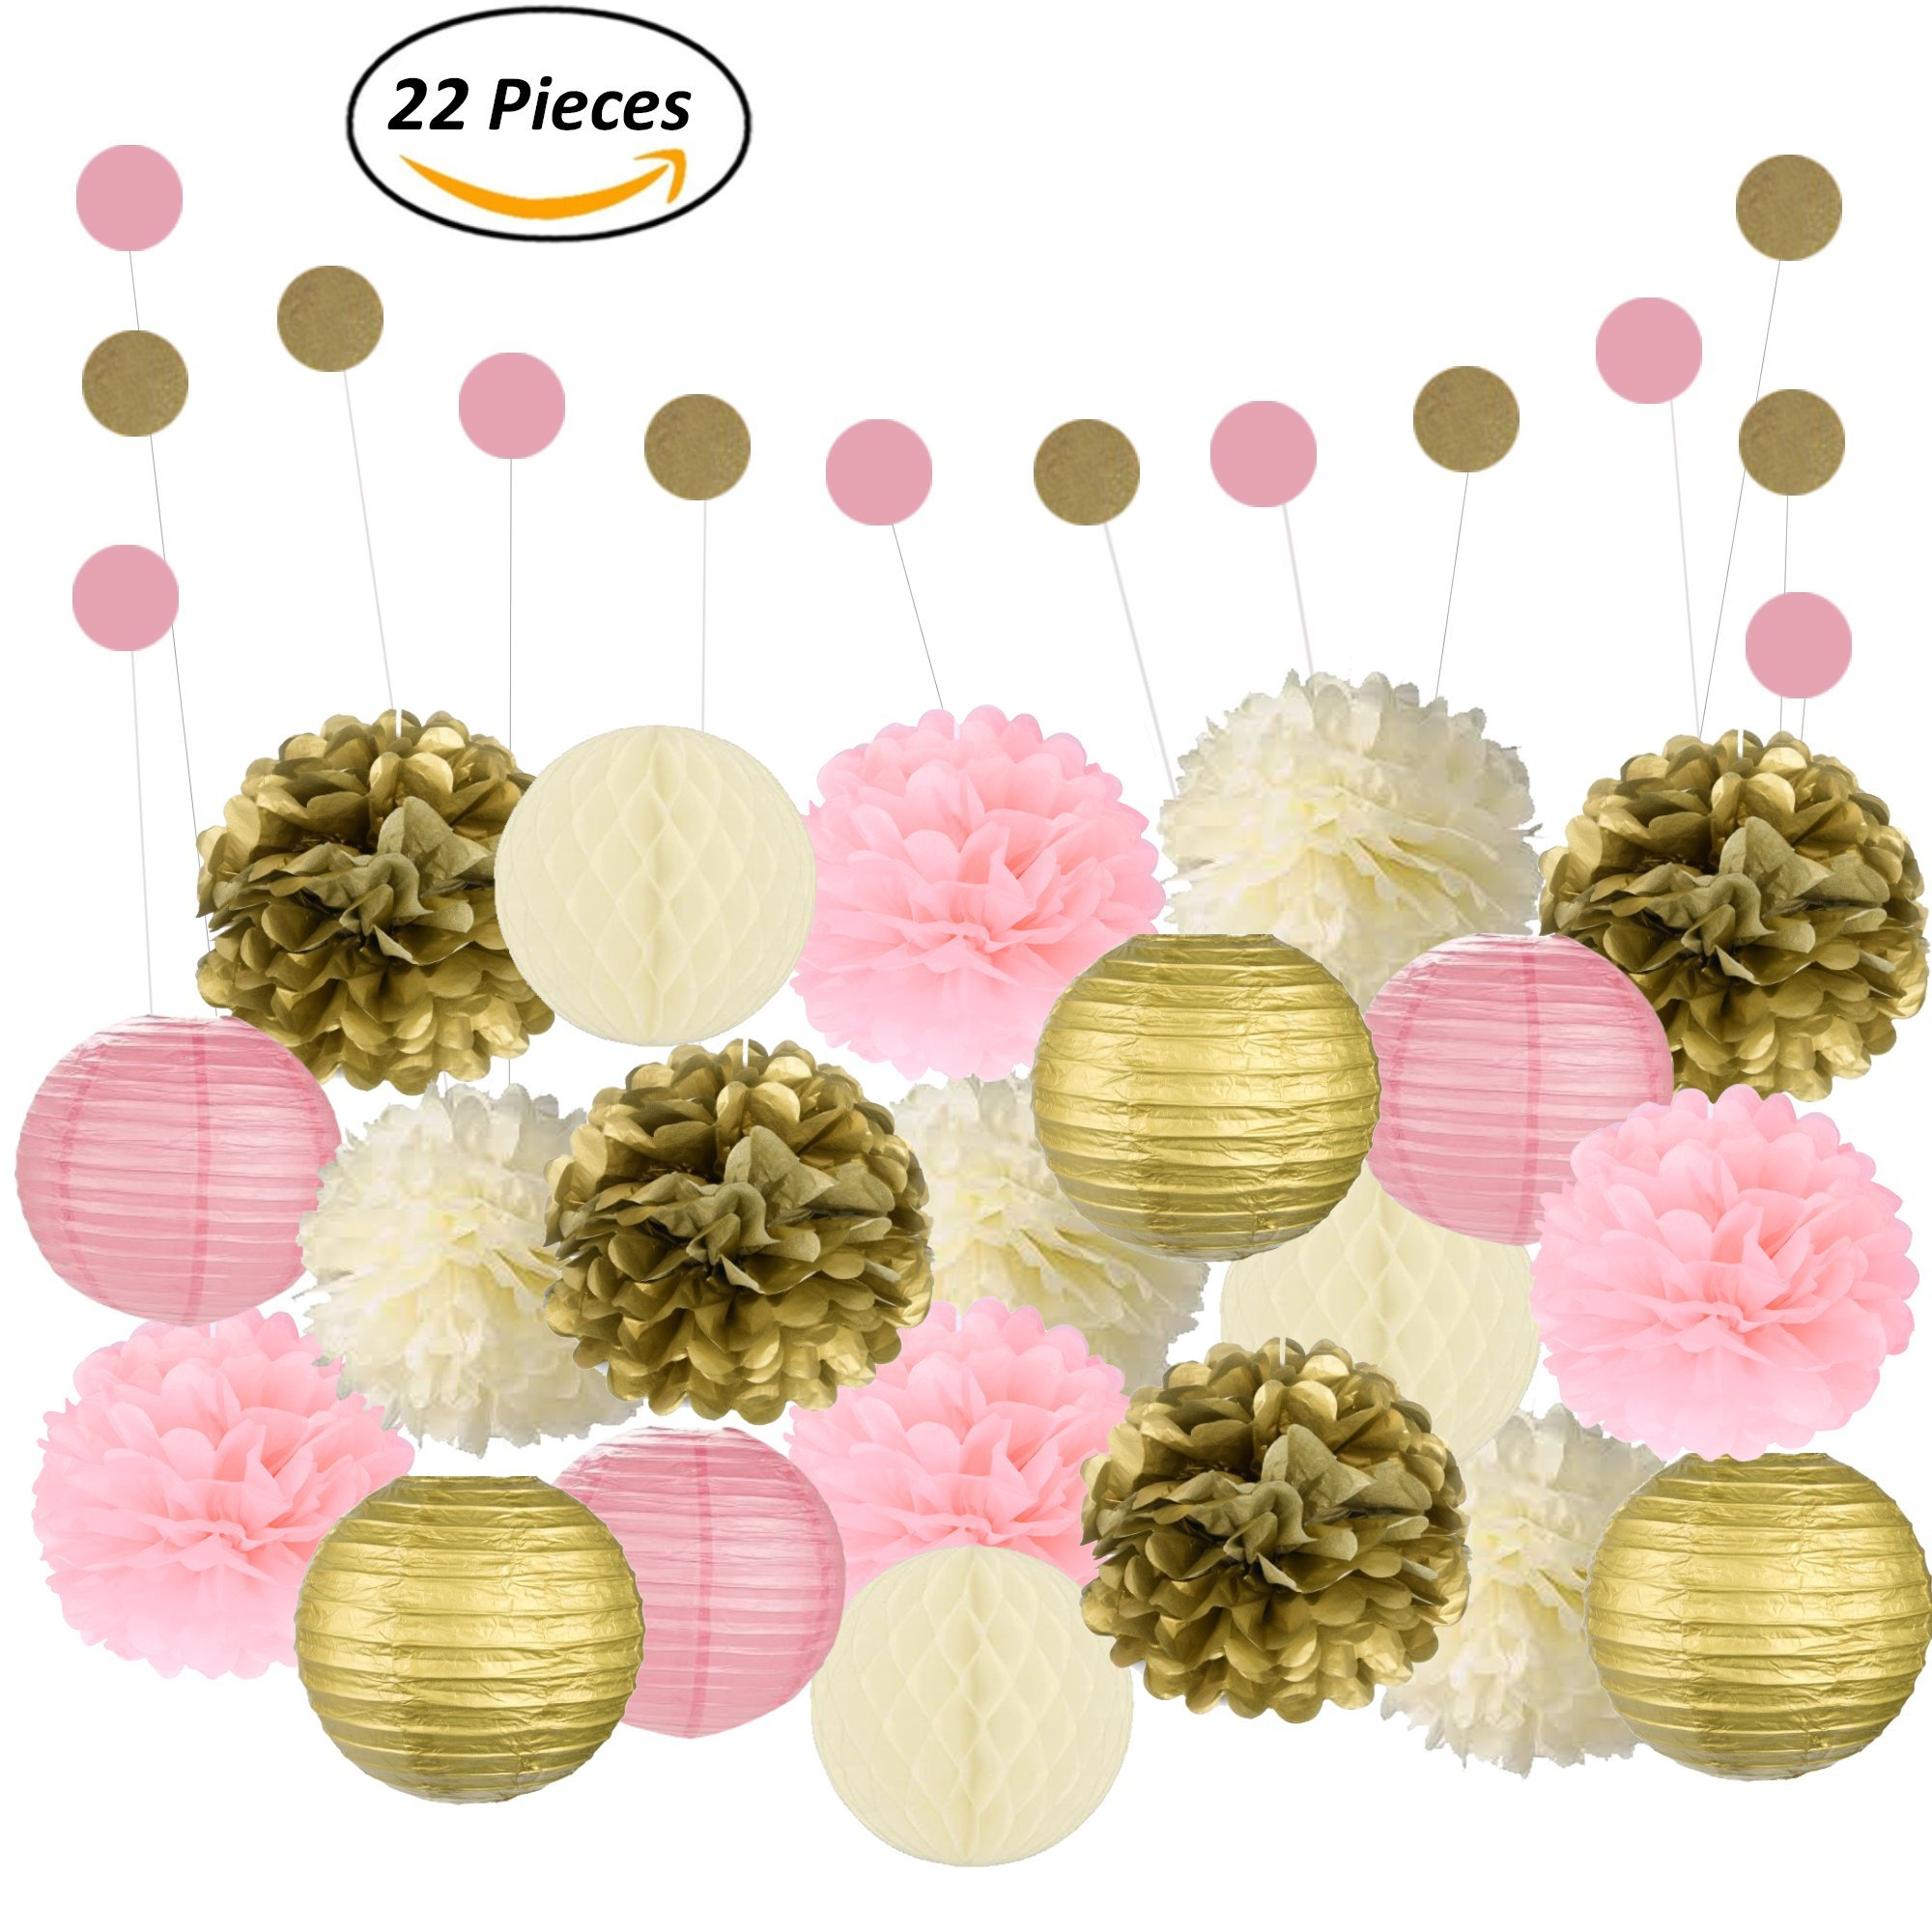 Adorable Mixed Pink, Gold & Ivory Party Decorations By Epique Occasions – Set Of Hanging Tissue Paper Flower Pom Poms, Lanterns & Honeycomb Balls For Birthday, Wedding & Party Décor-22 Pcs & String by Epique Occasions